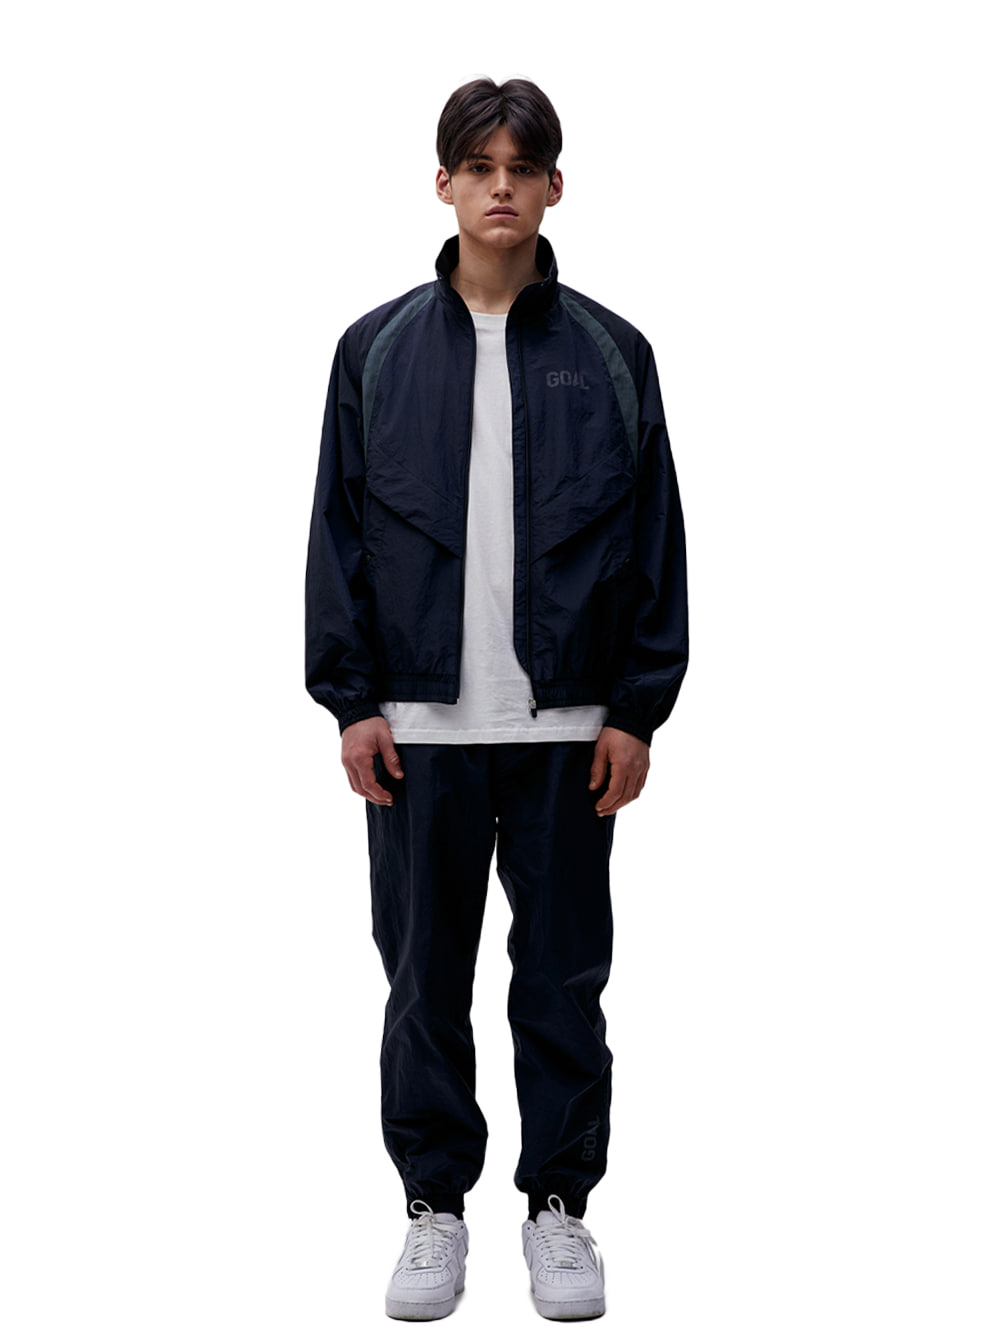 [10% OFF] WARMUP JACKET & PANTS SET - NAVY